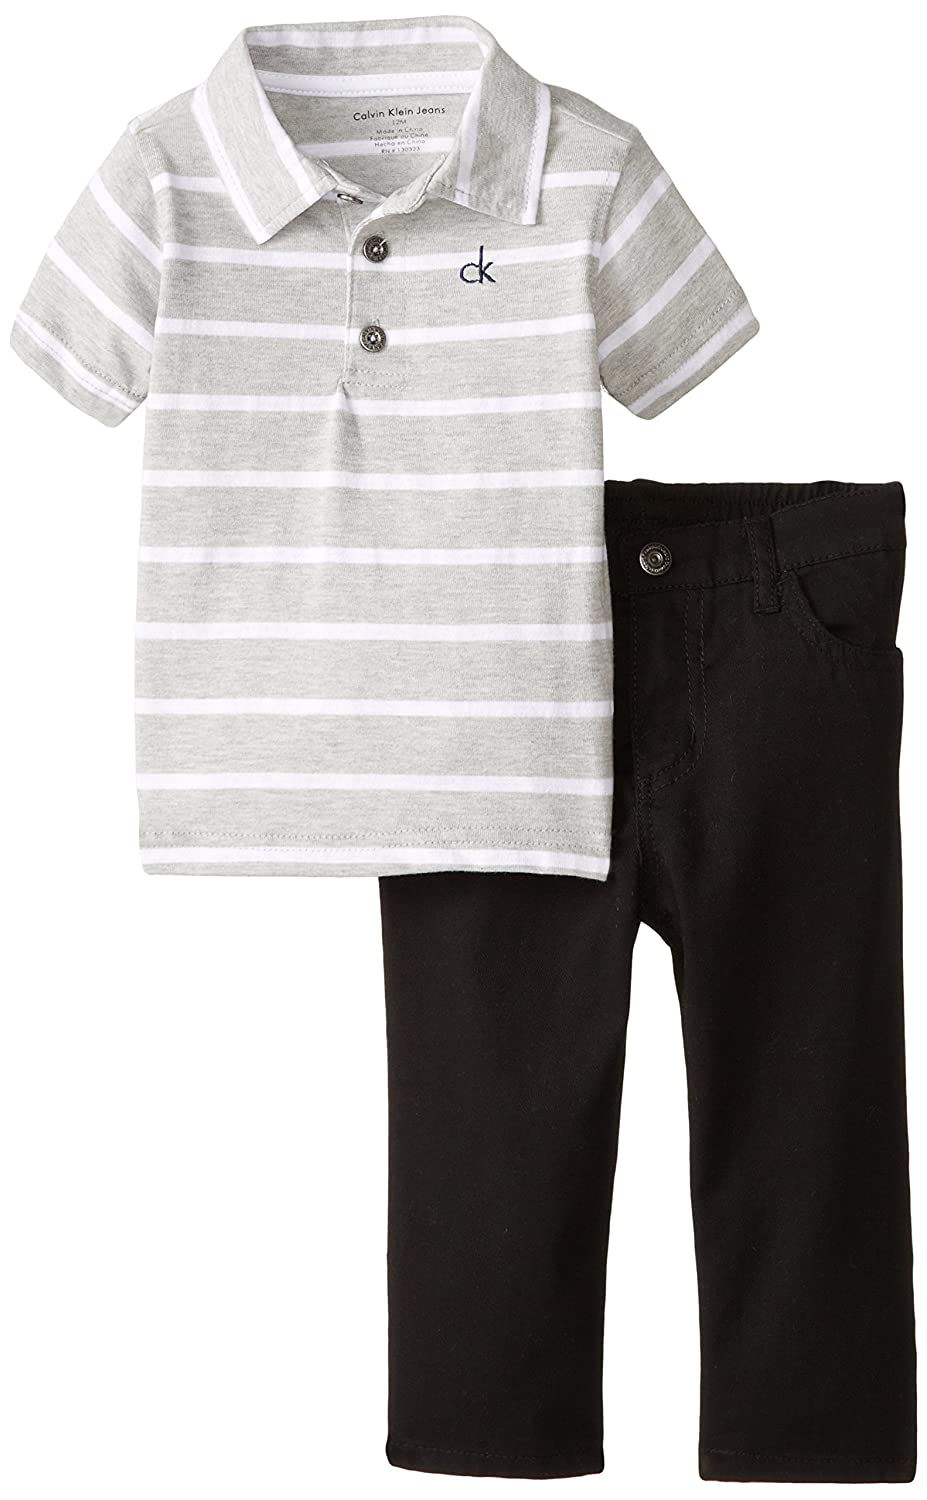 Calvin Klein Baby Boys' Gray Polo with Blue Pants игрушка ecx ruckus gray blue ecx00013t1